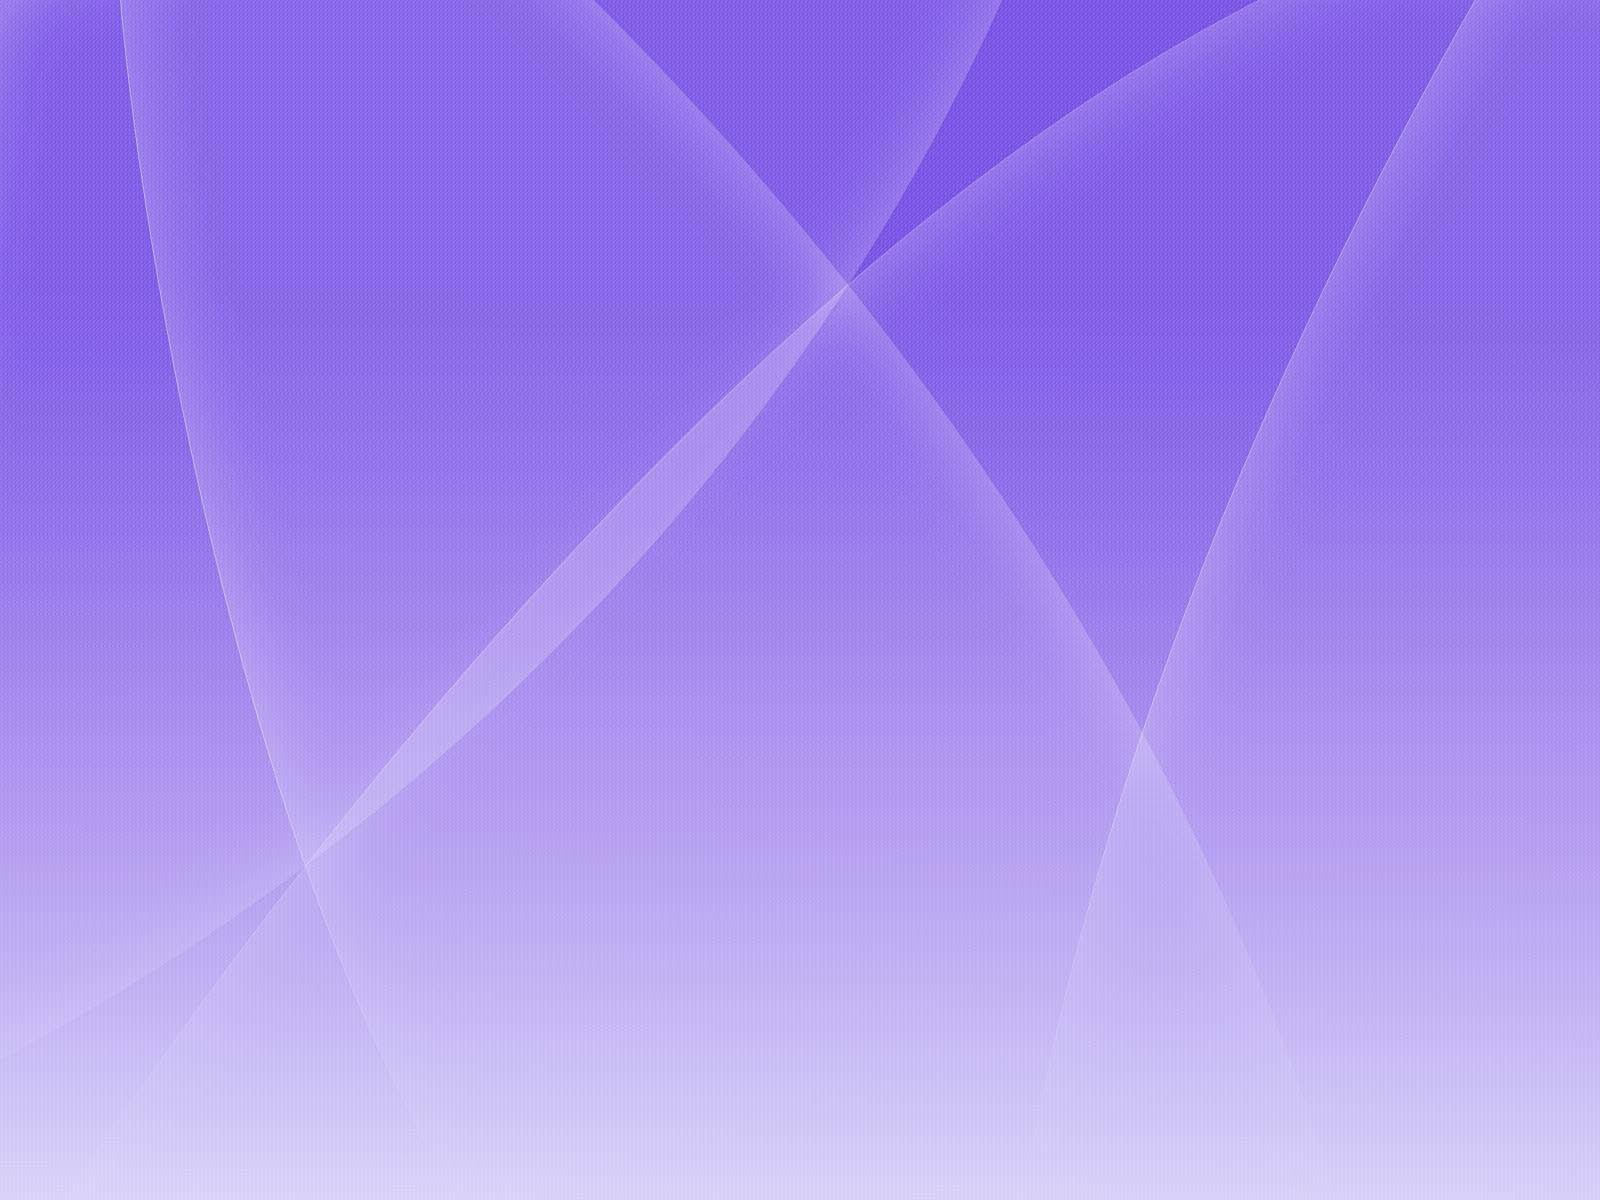 Abstract Purple Wallpapers   Screensaver 1600x1200